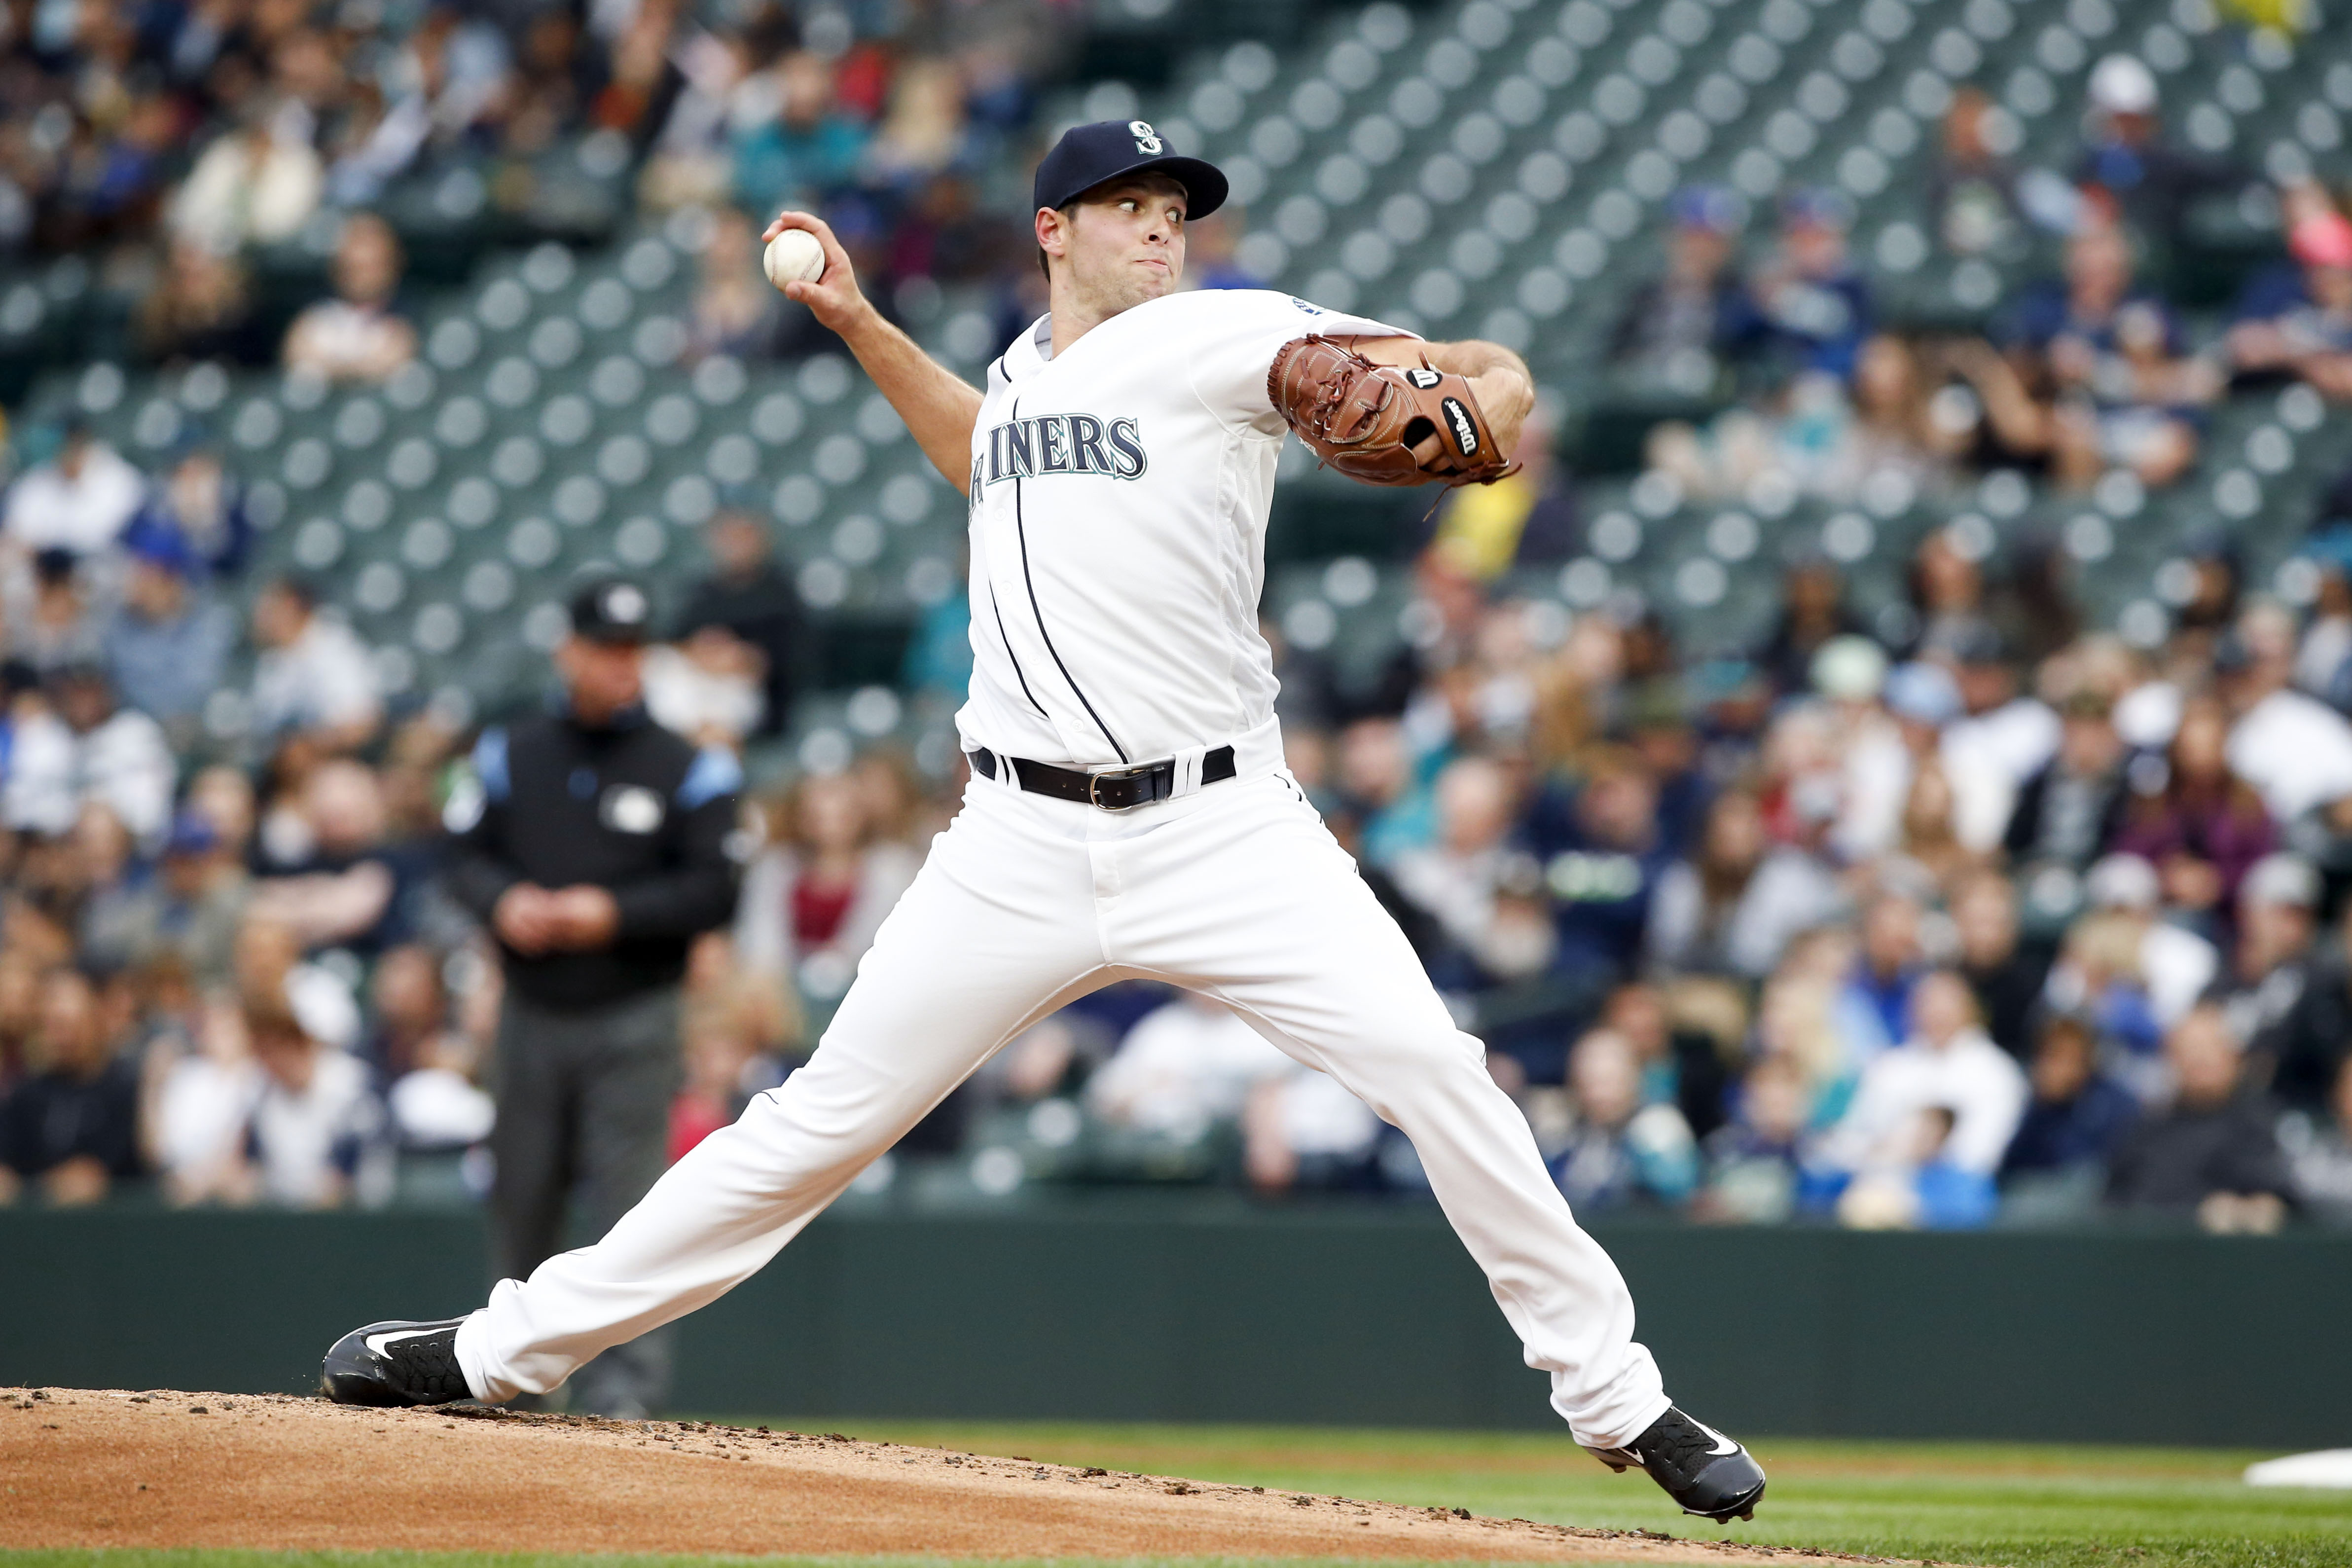 10063594-mlb-chicago-white-sox-at-seattle-mariners